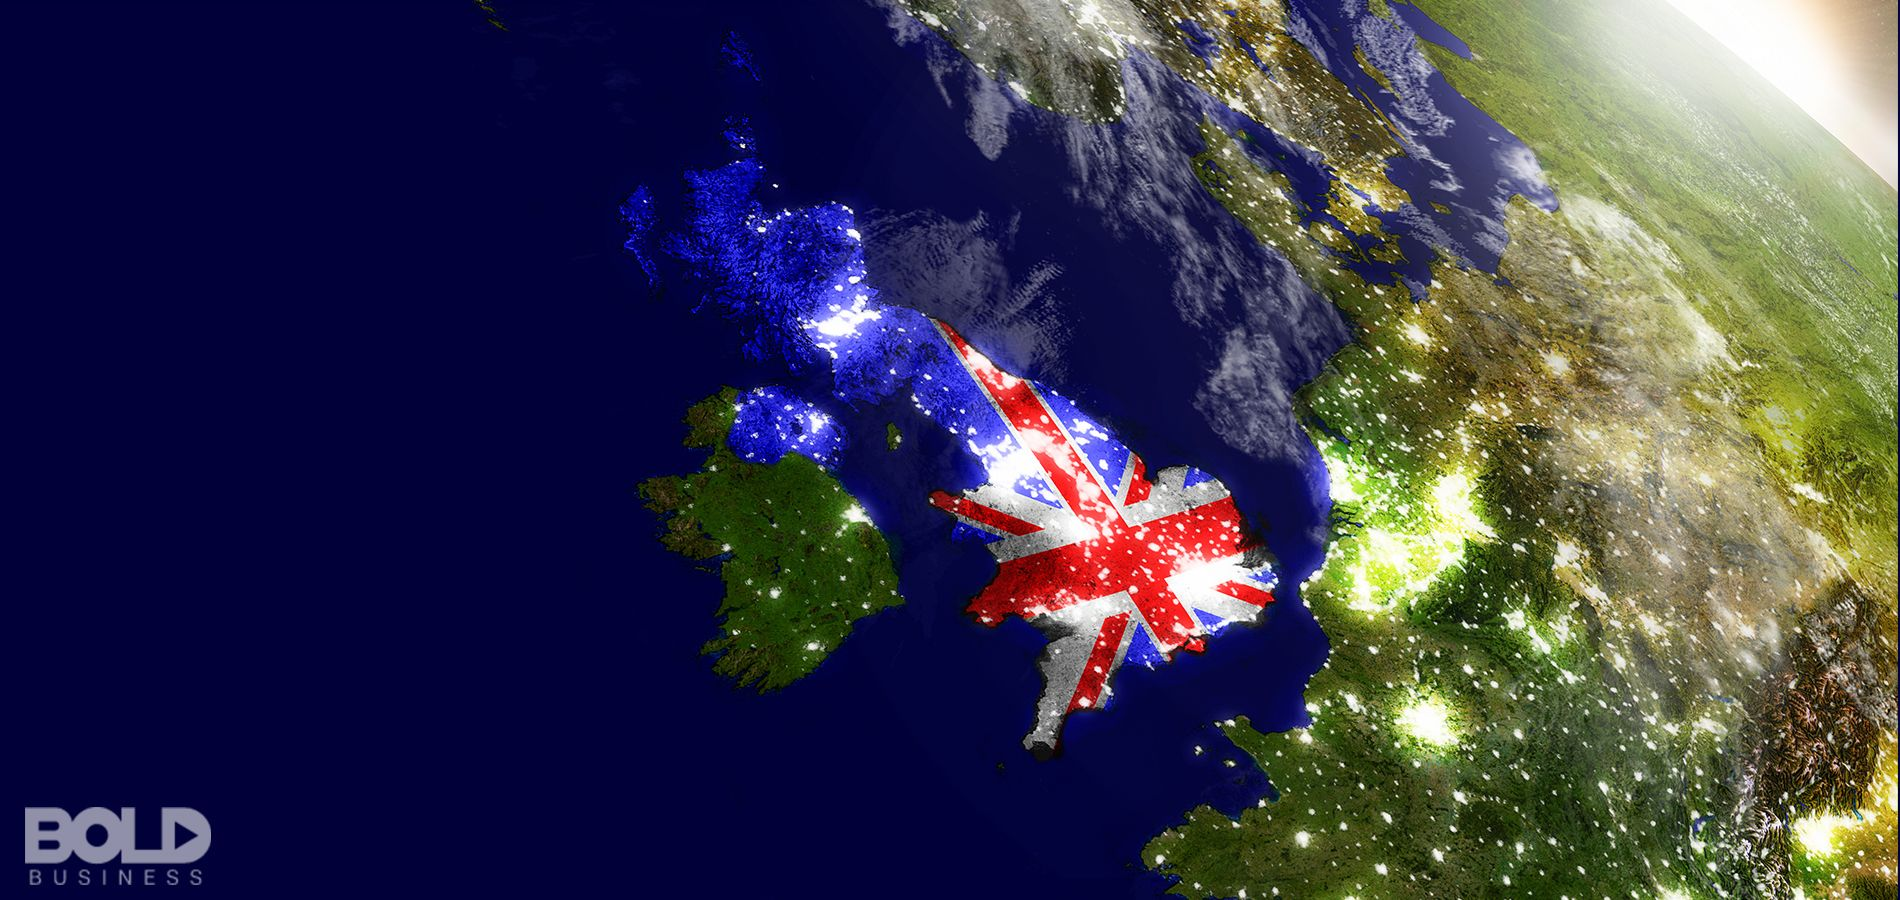 An astronaut's view of Great Britain